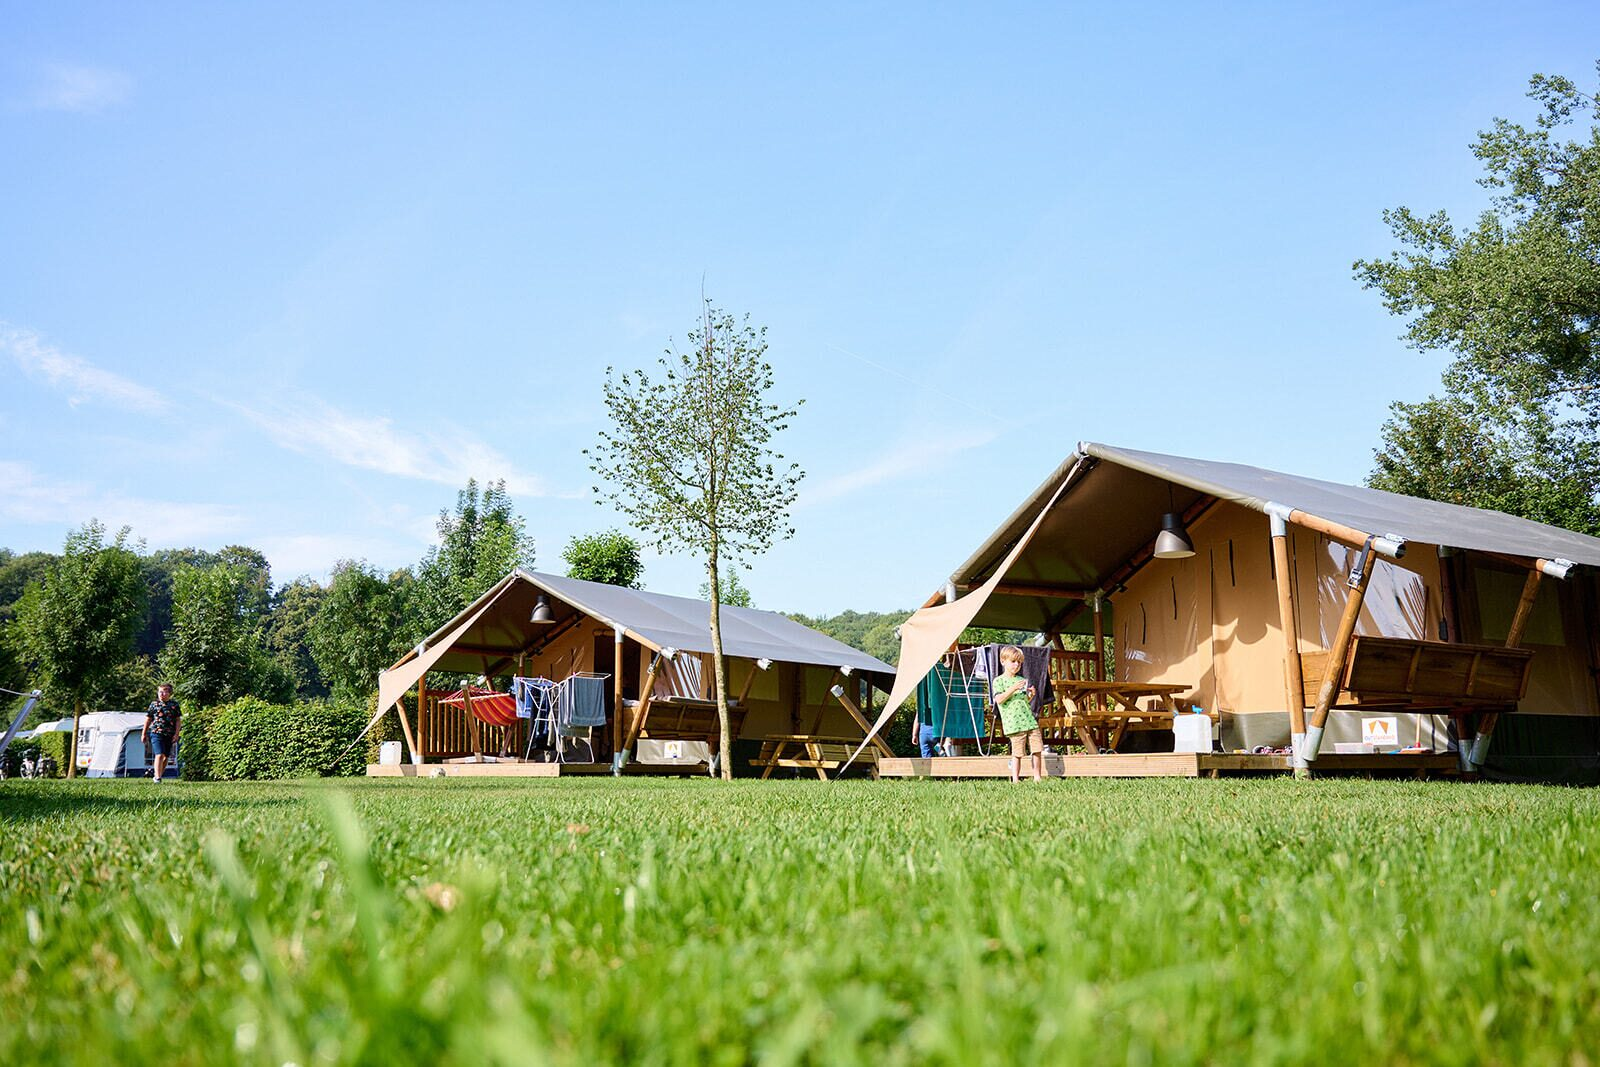 Camping 't Geuldal